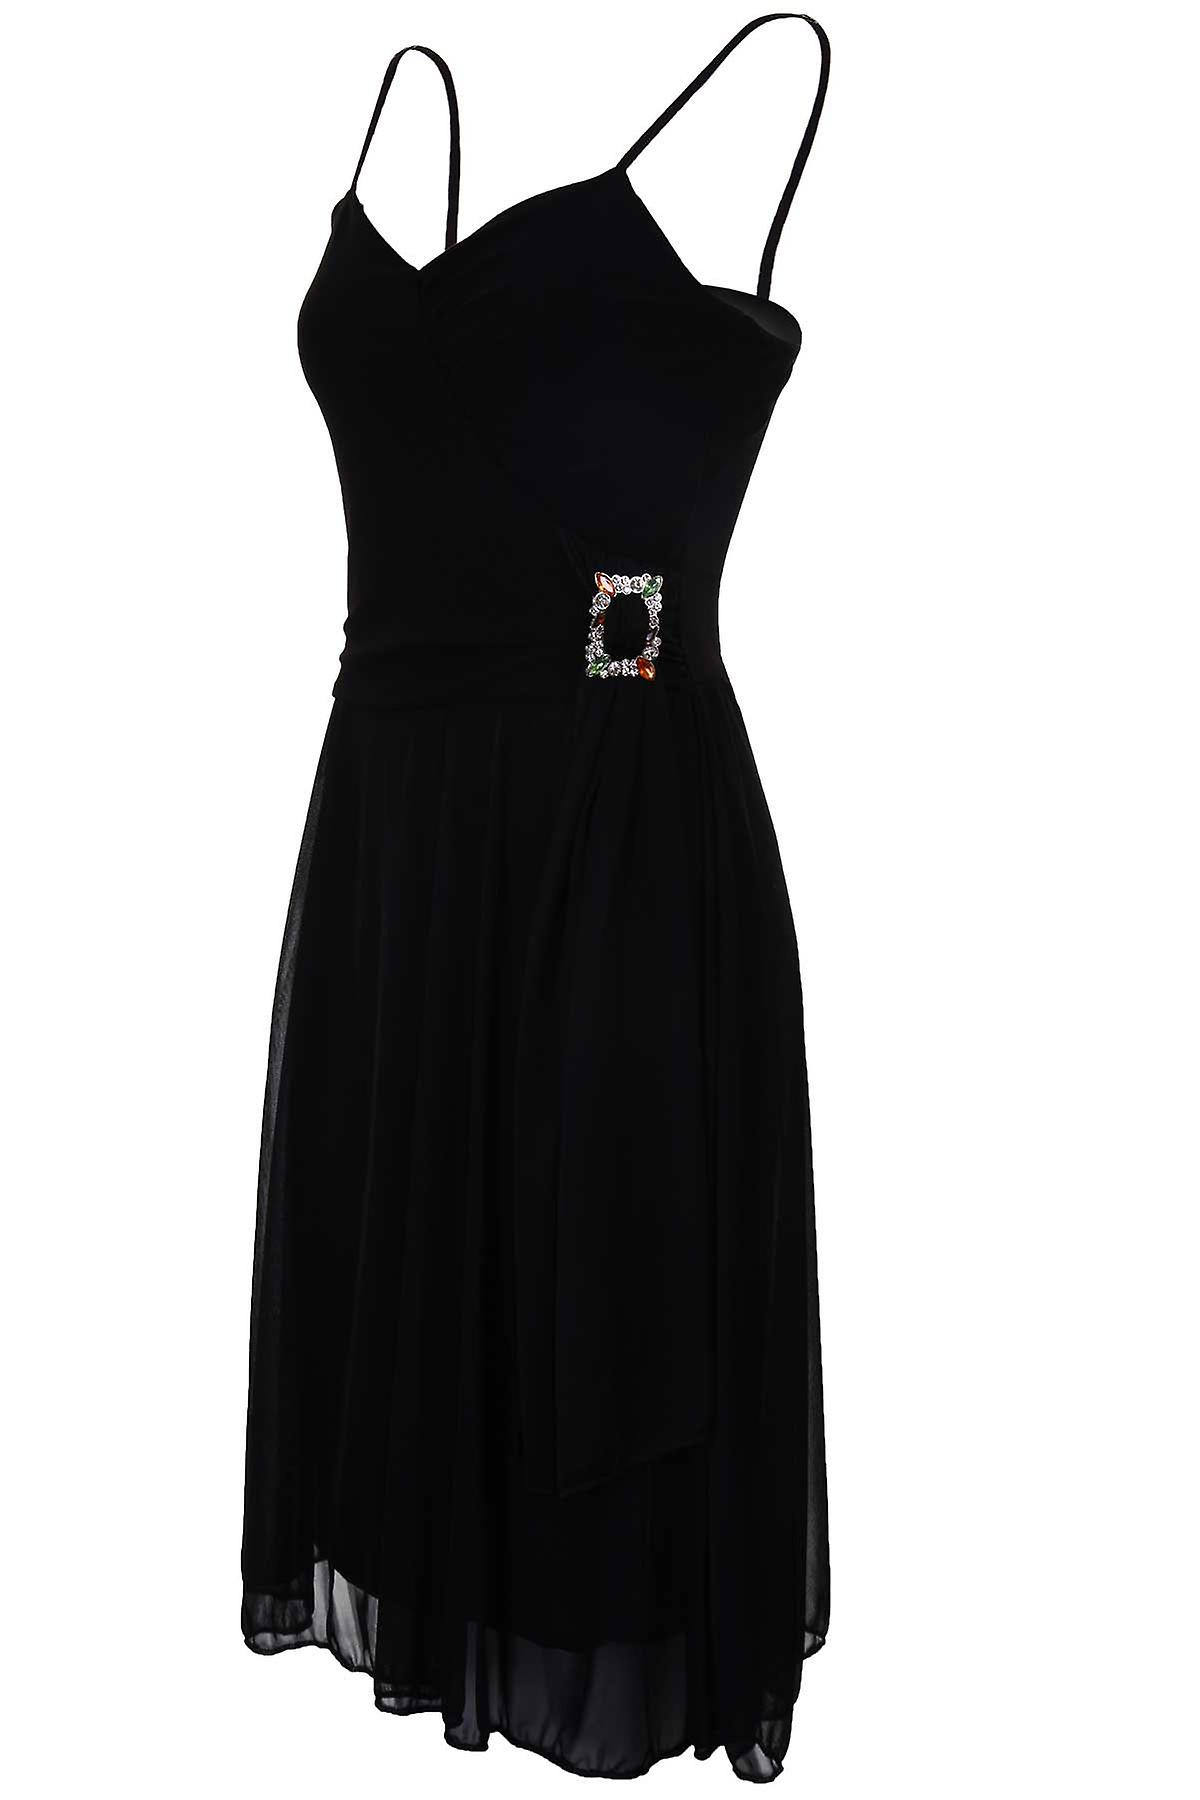 Ladies Strappy Gathered Lined Chiffon Diamante Buckle Women's Flare Cami Dress